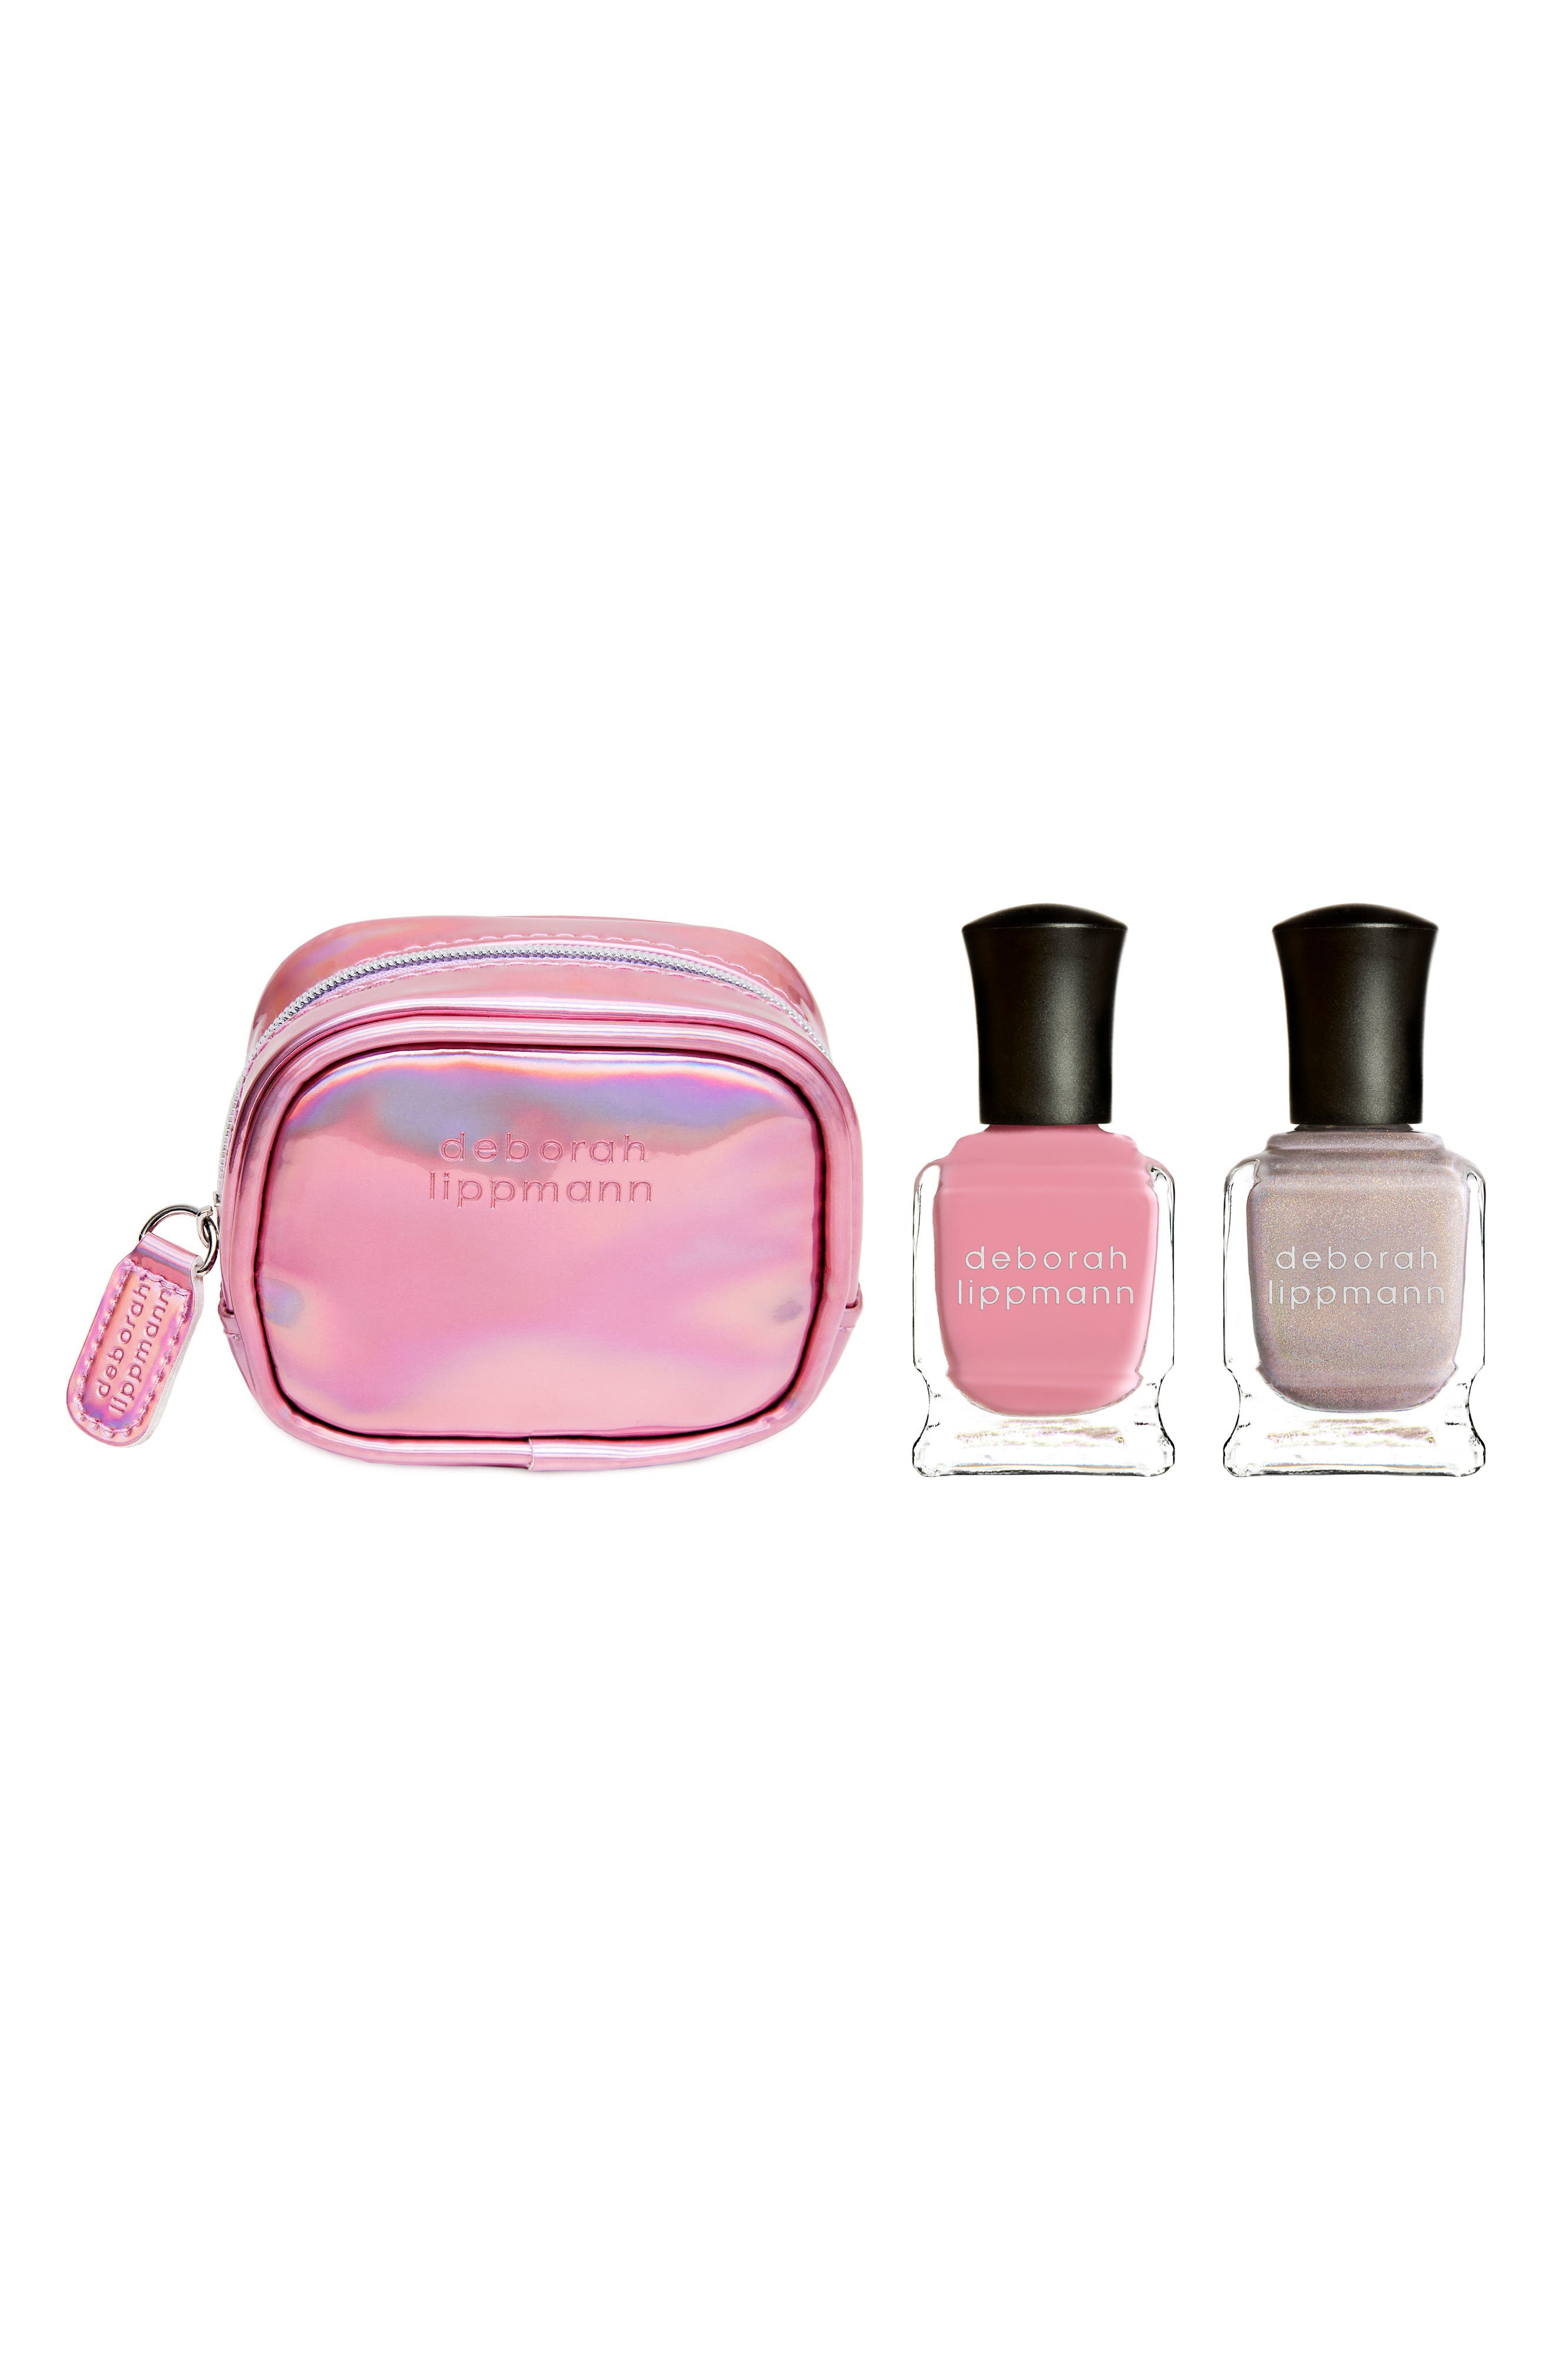 Main Image - Deborah Lippmann Hologram Girl Nail Color Duo ($24 Value)